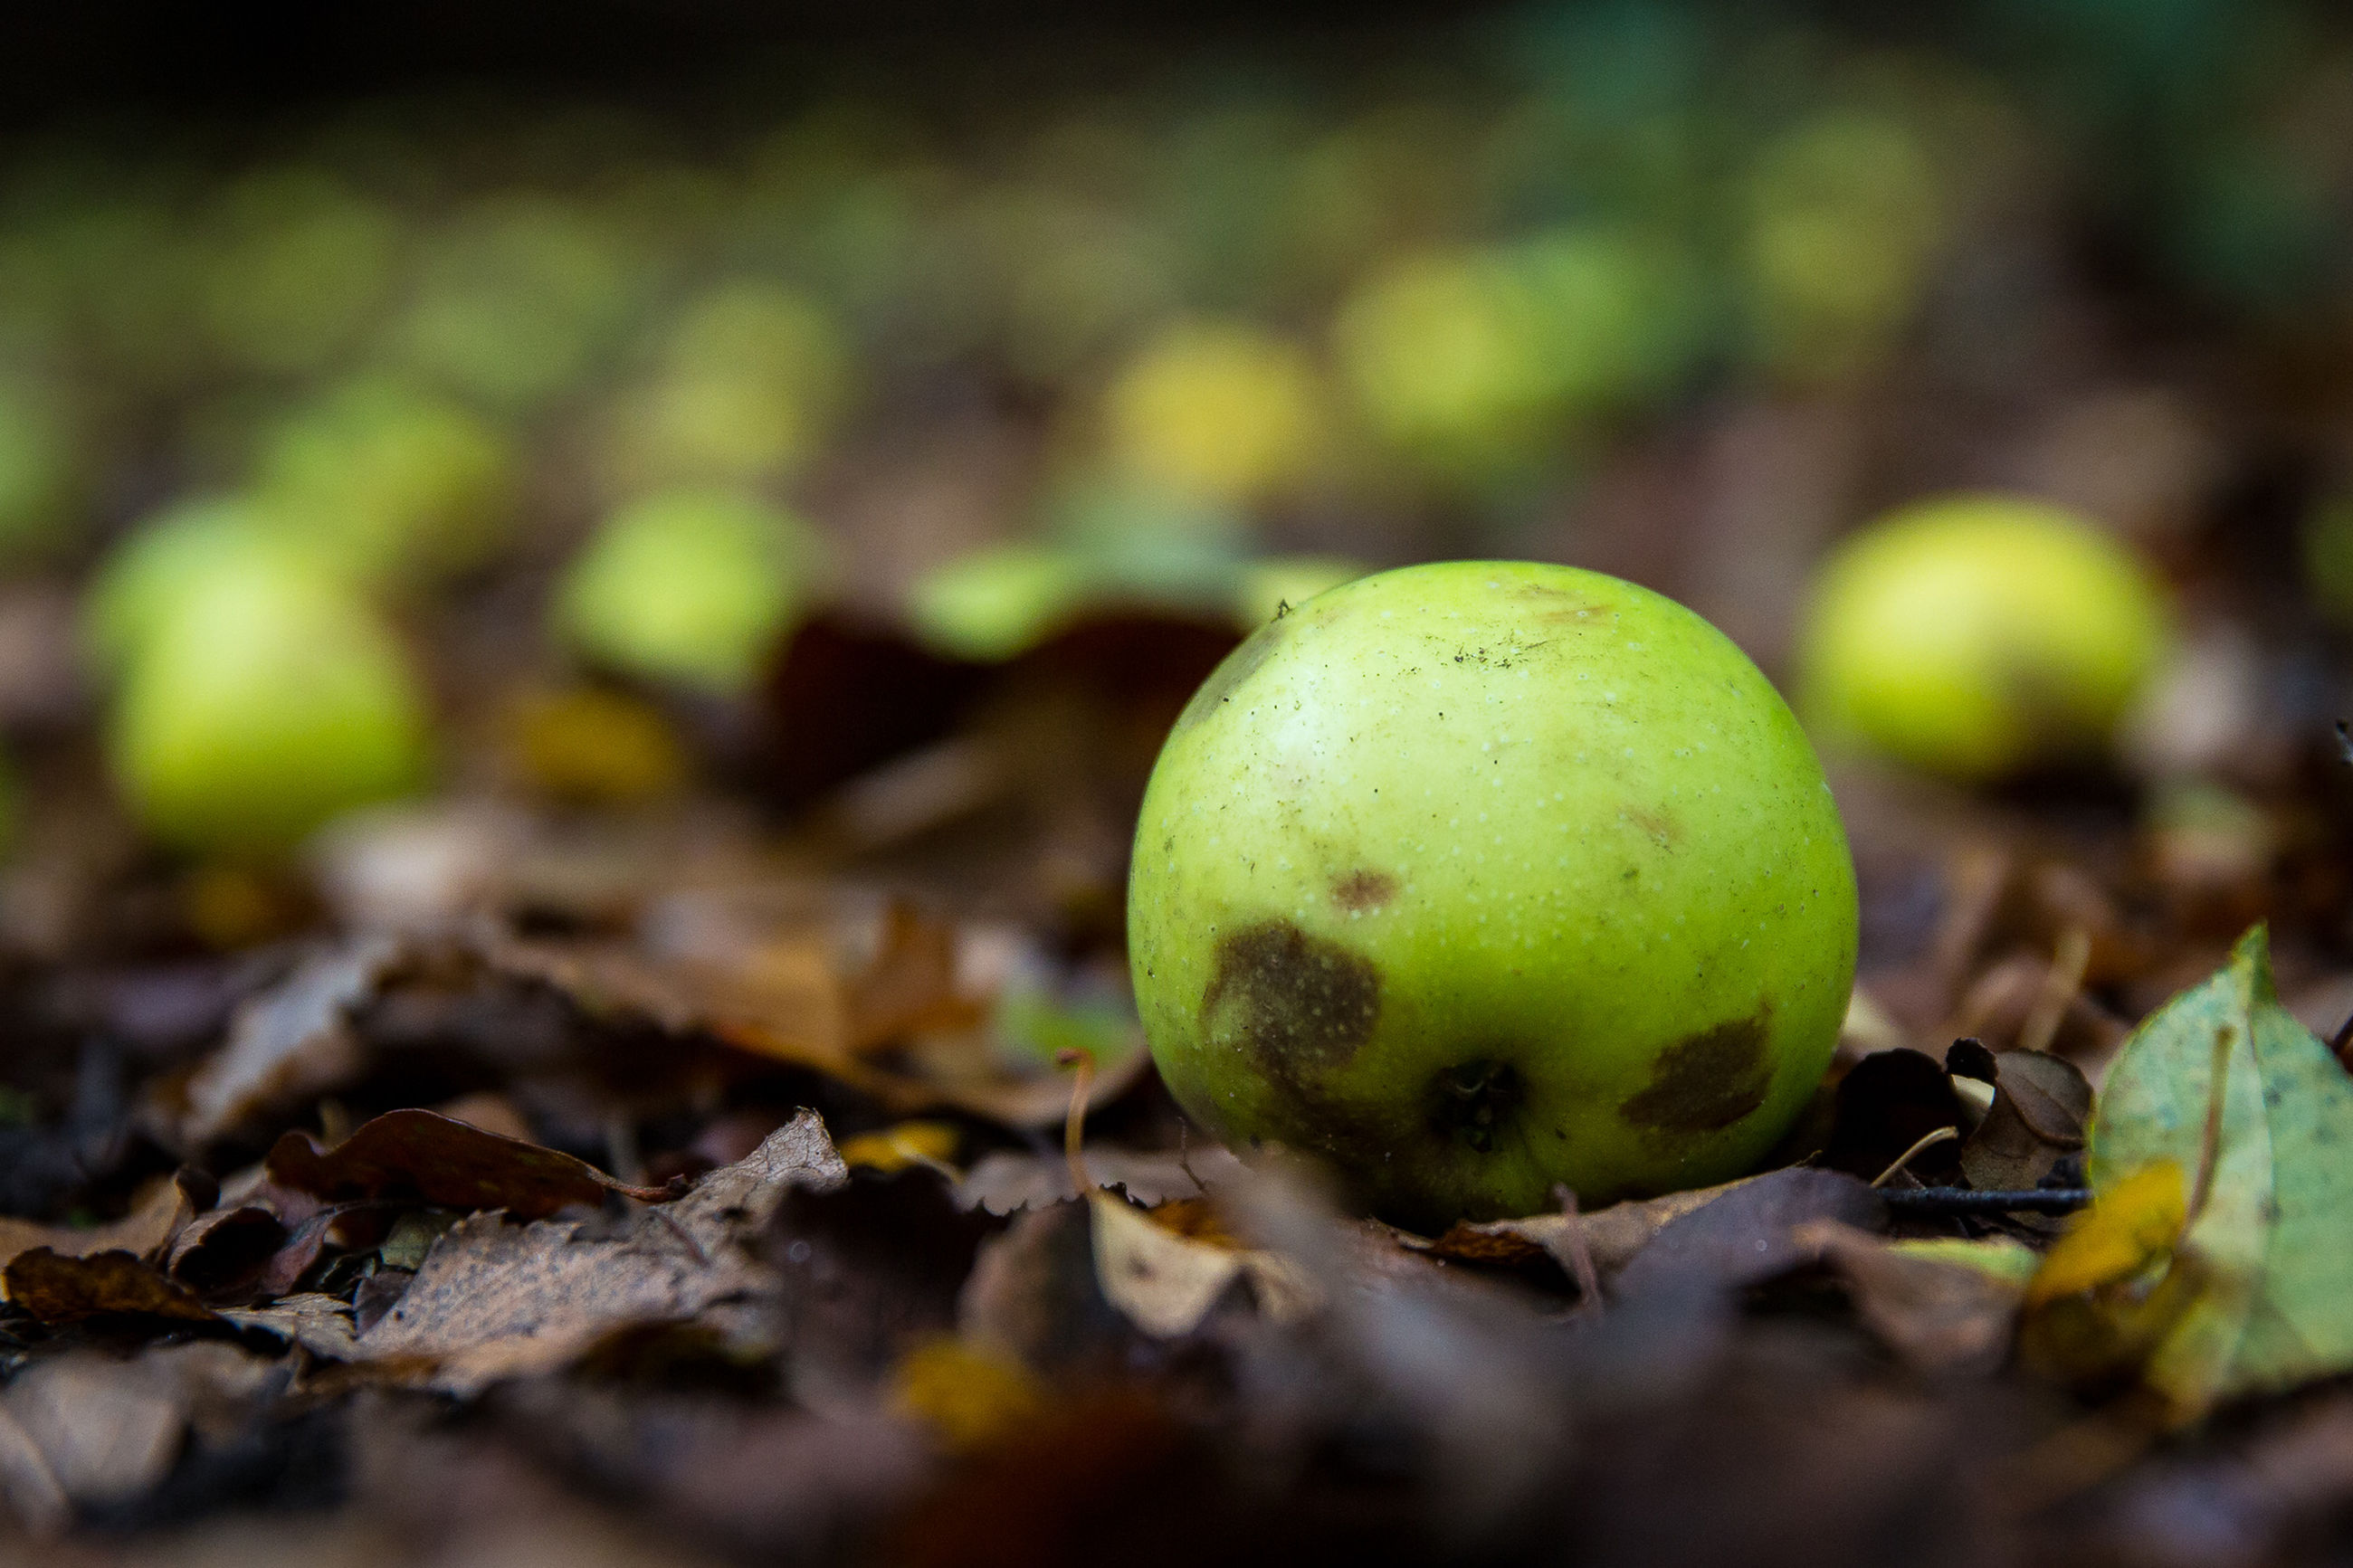 close-up, leaf, selective focus, focus on foreground, green color, nature, fruit, growth, day, outdoors, no people, yellow, field, autumn, ground, plant, moss, growing, dry, tranquility